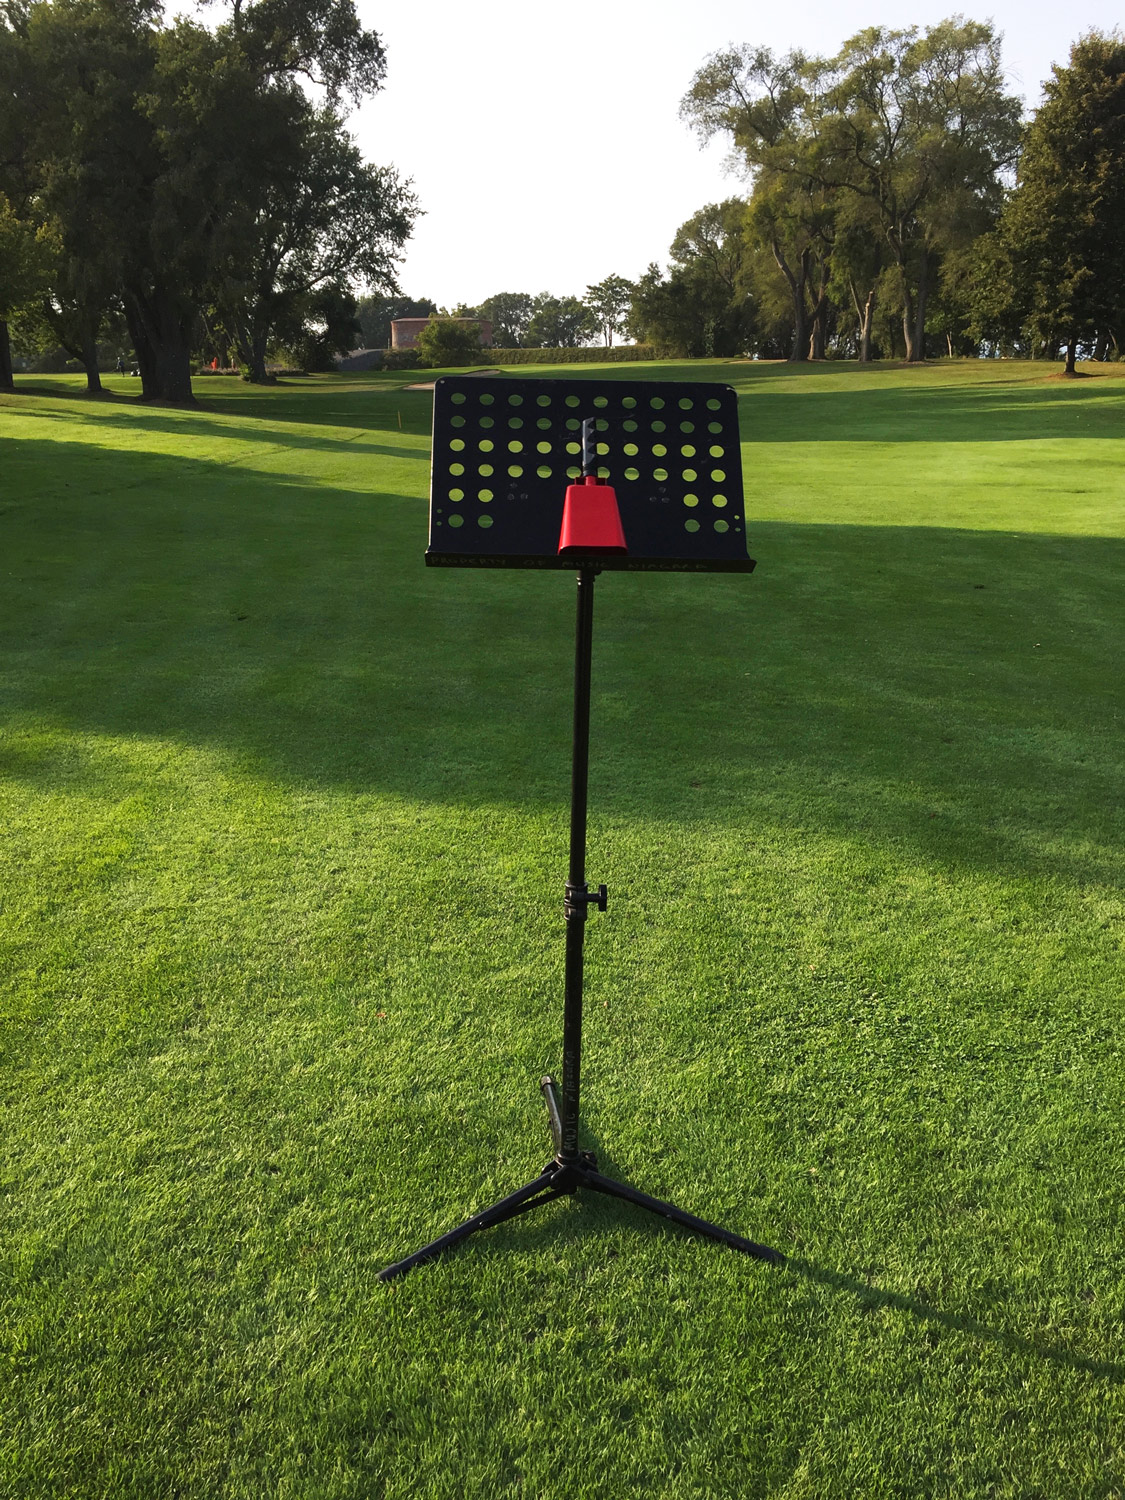 Golf course with music stand